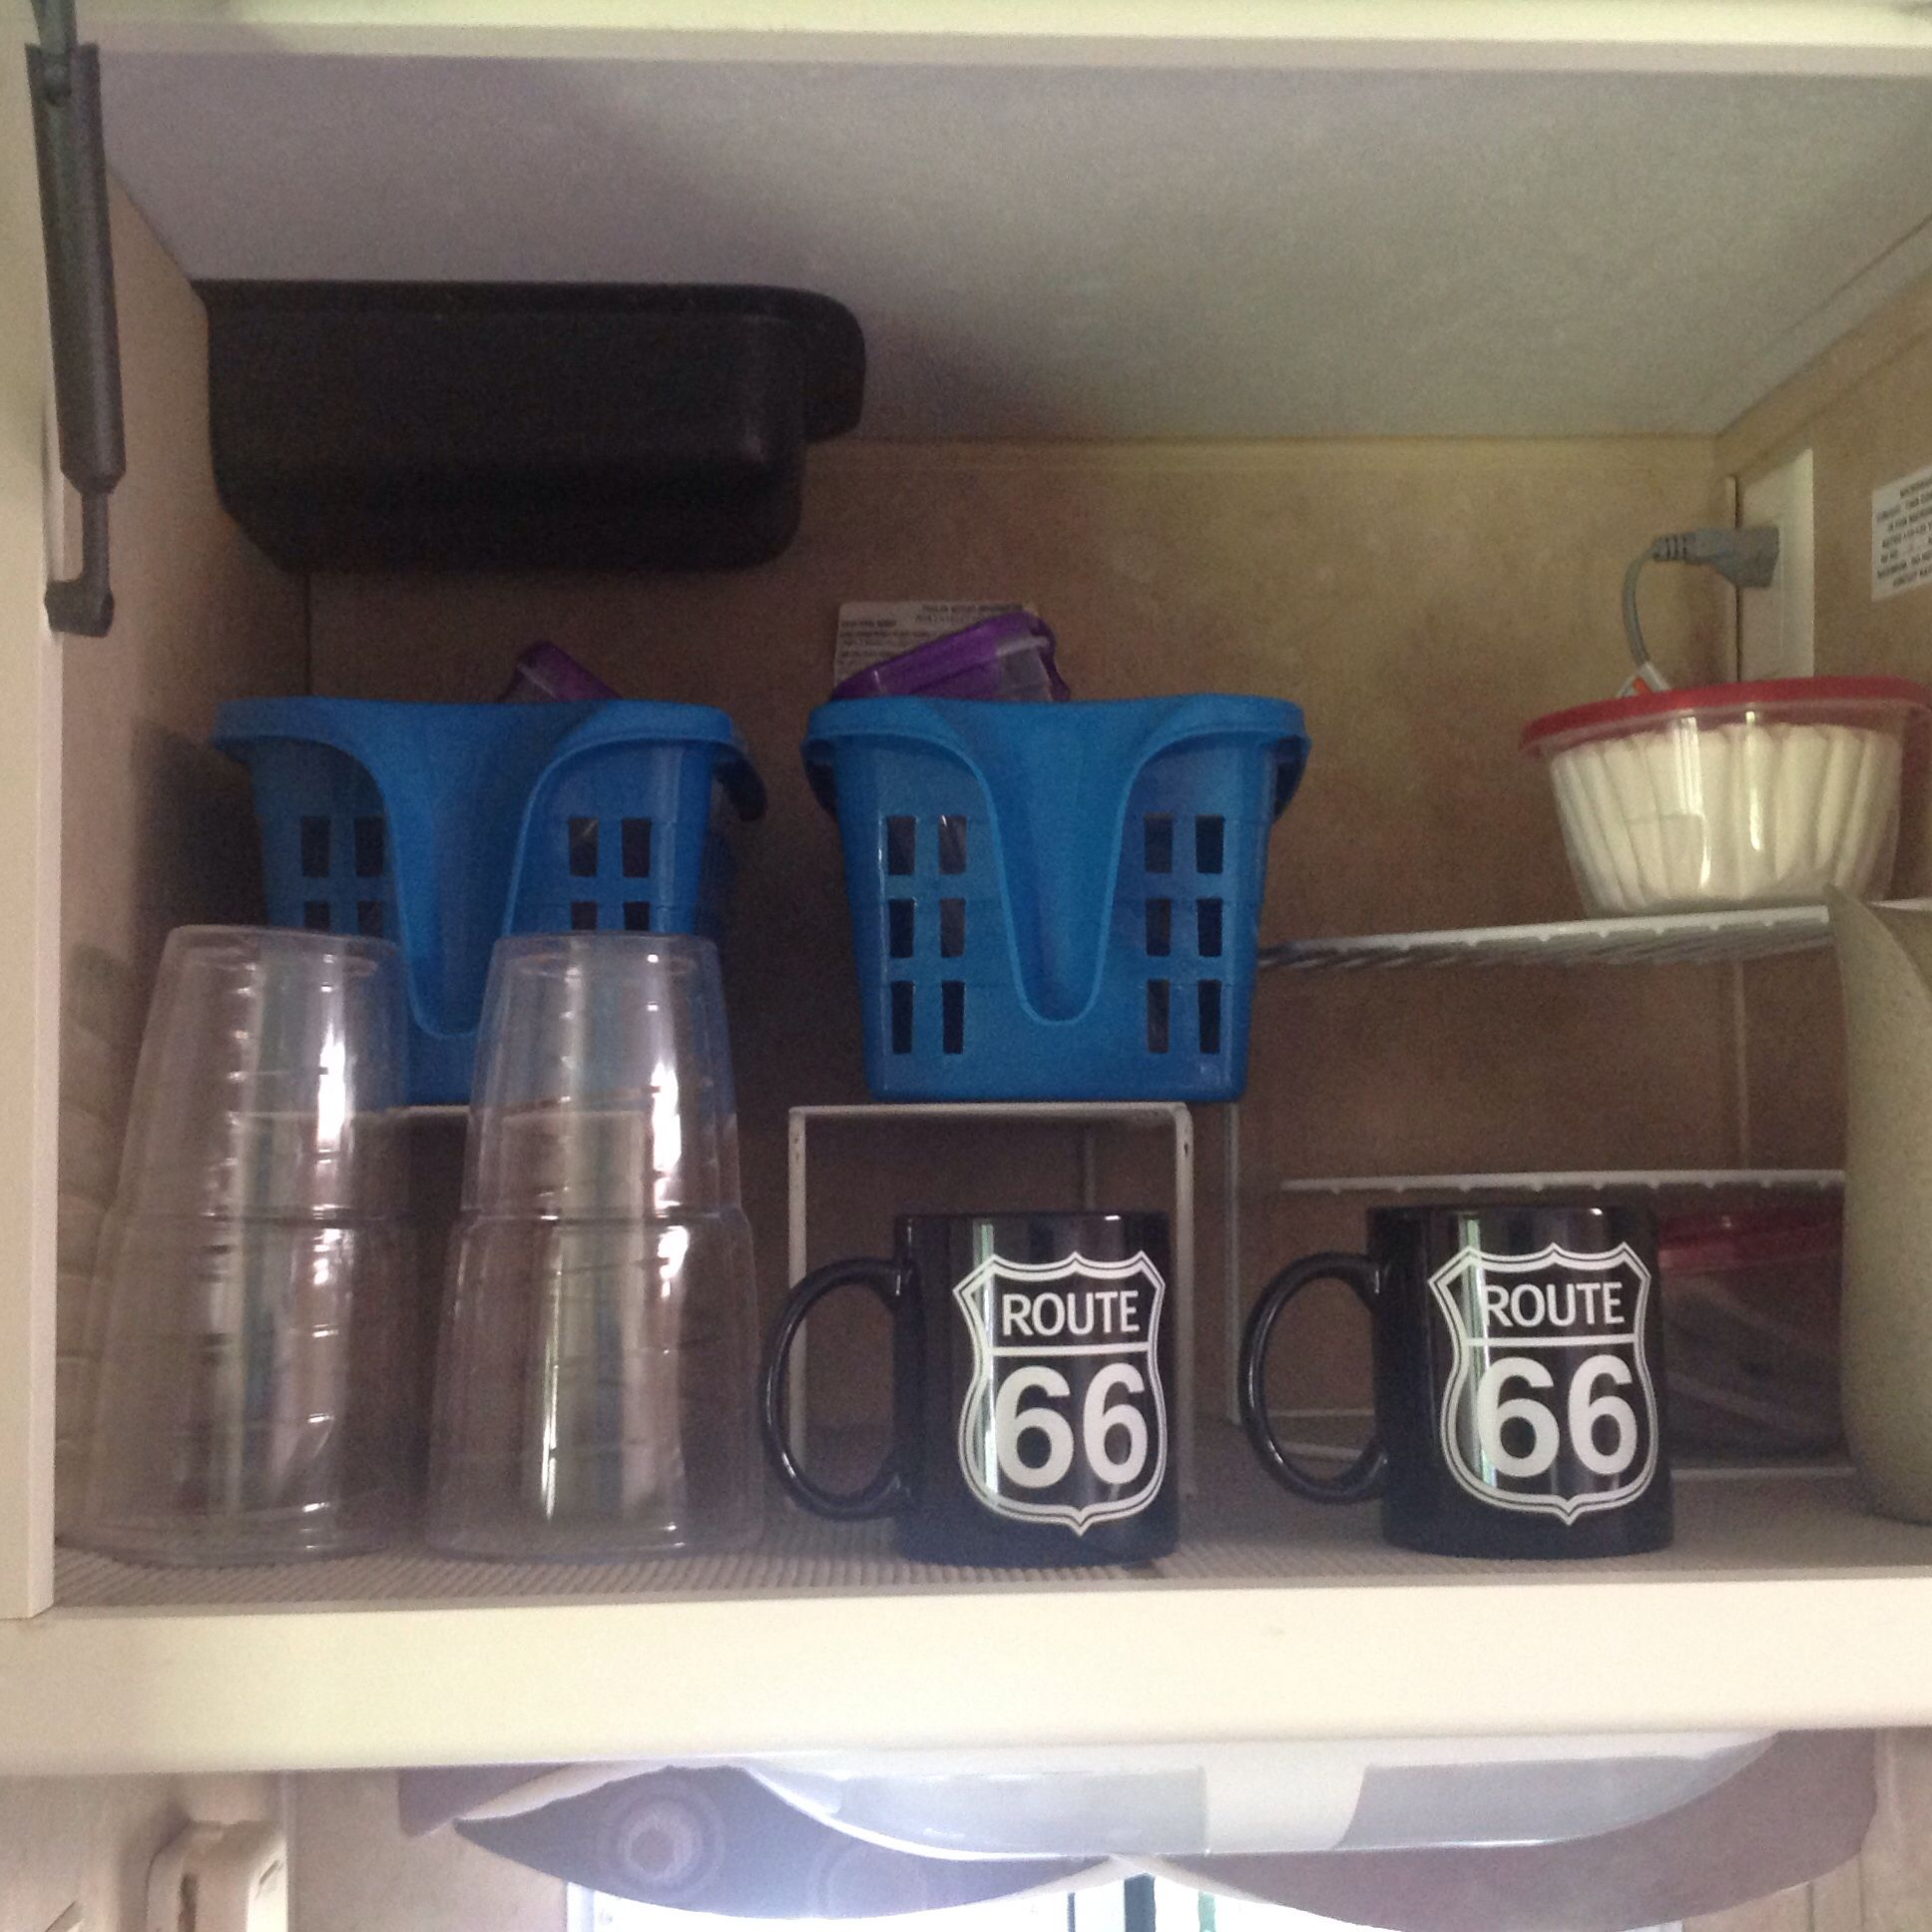 Shelving Racks Insulated Glasses Coffee Filters In Round Storage Container Route 66 Coffee Cups With Images Travel Trailer Organization Shelving Racks Storage Baskets